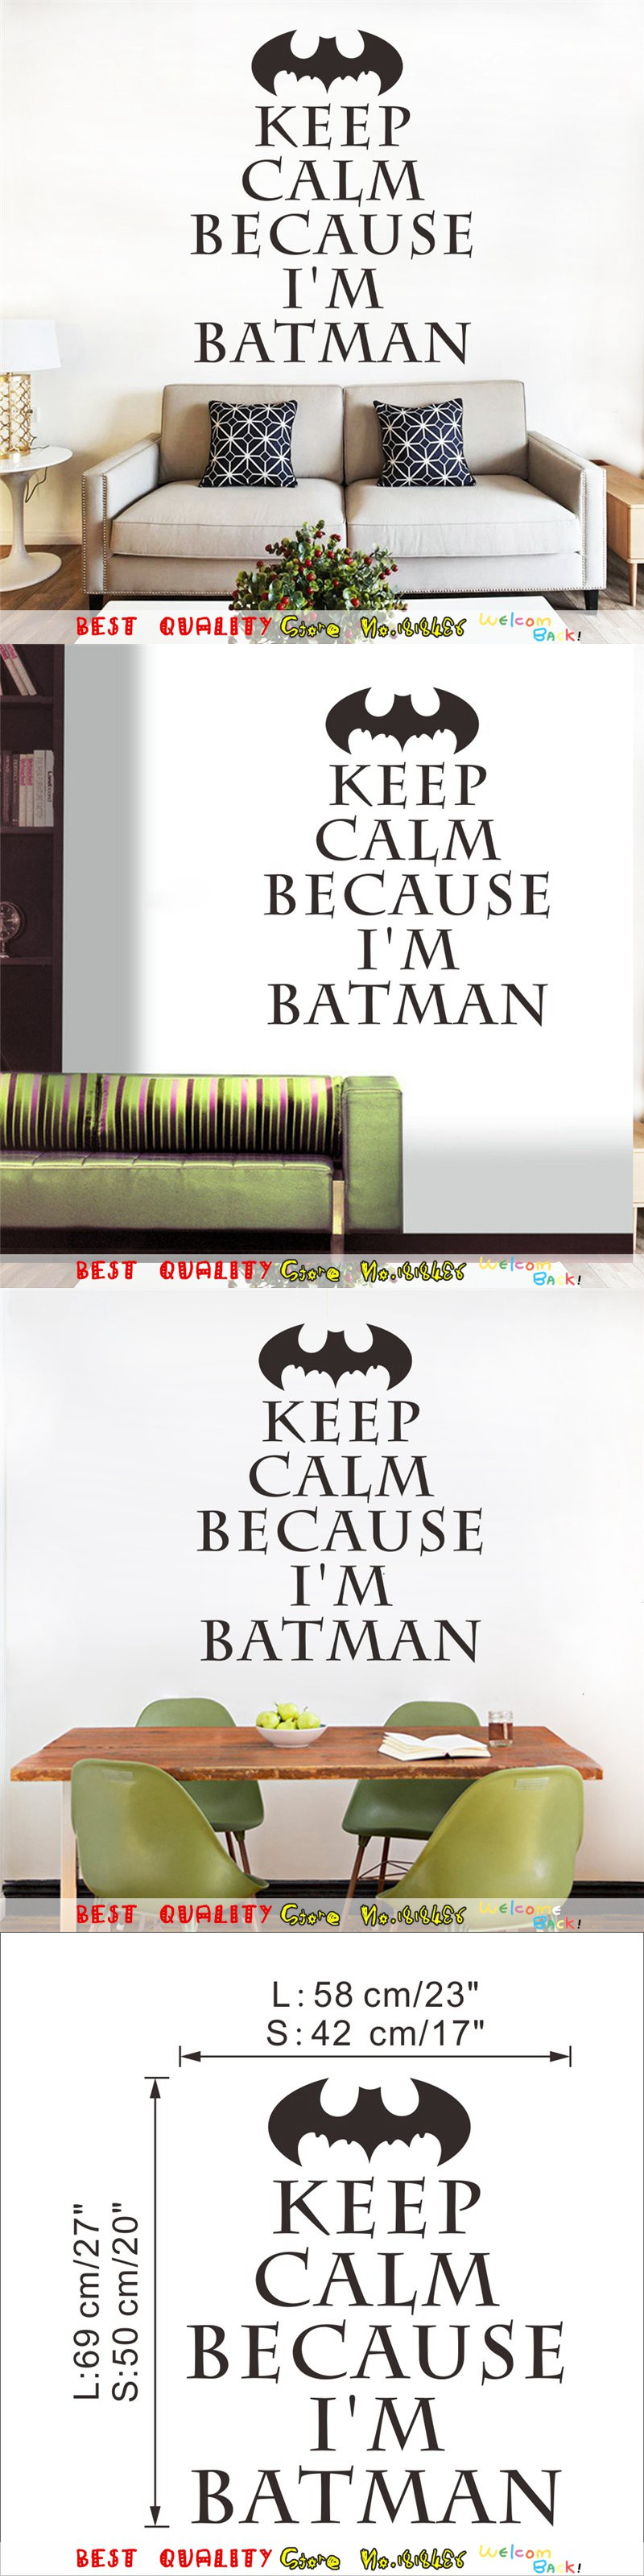 Keep Calm I Am Batman Wall Stickers Kids Bedroom Decoration, Vinyl Home Decal Movie Poster Mual Art Sticker Adesivo De Paredes